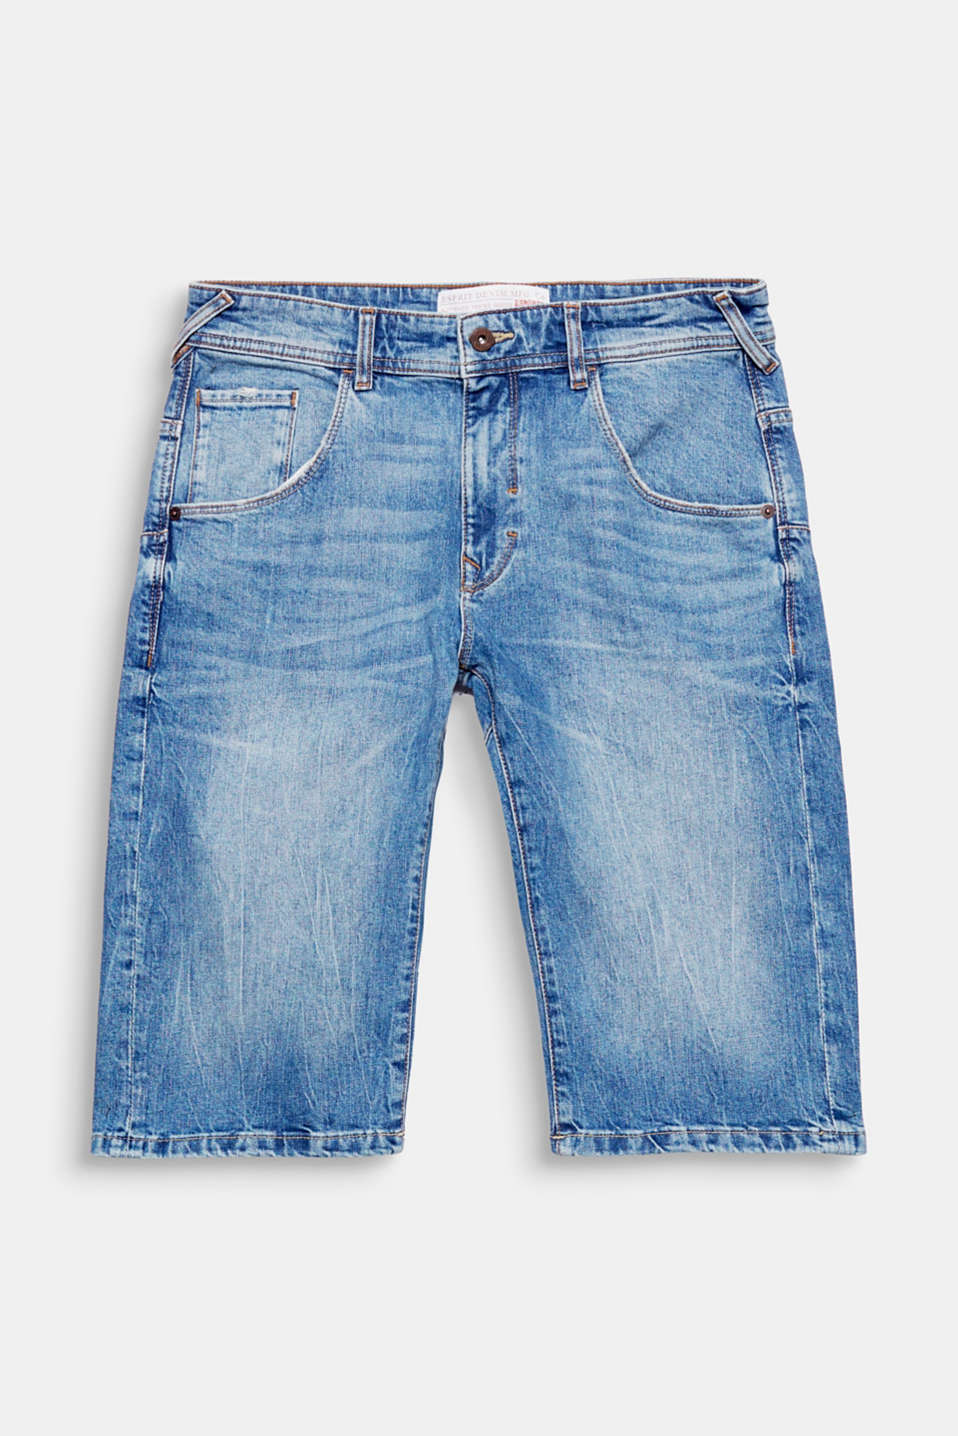 We care! These denim shorts are made of recycled cotton: 100% sustainable manufacturing process.